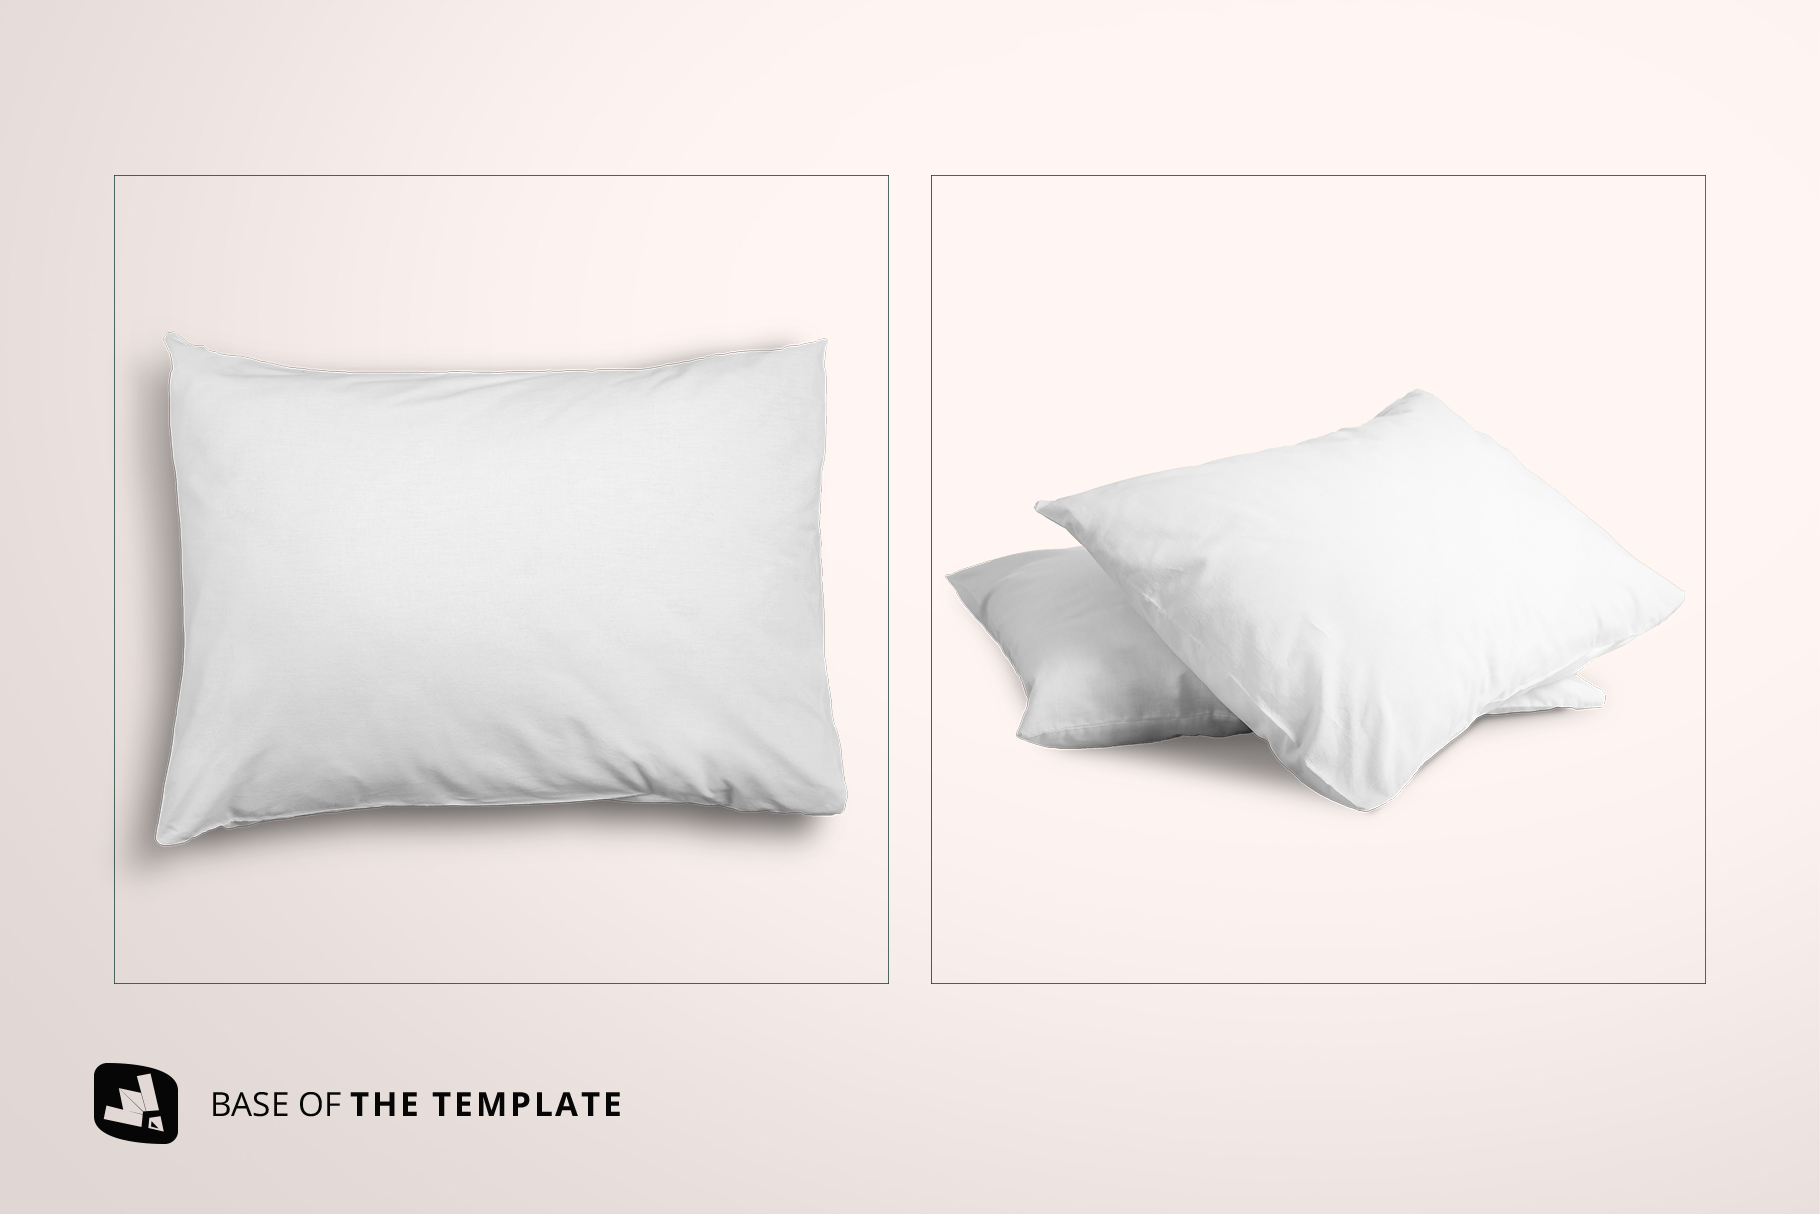 base image of the set of cotton pillow case mockup